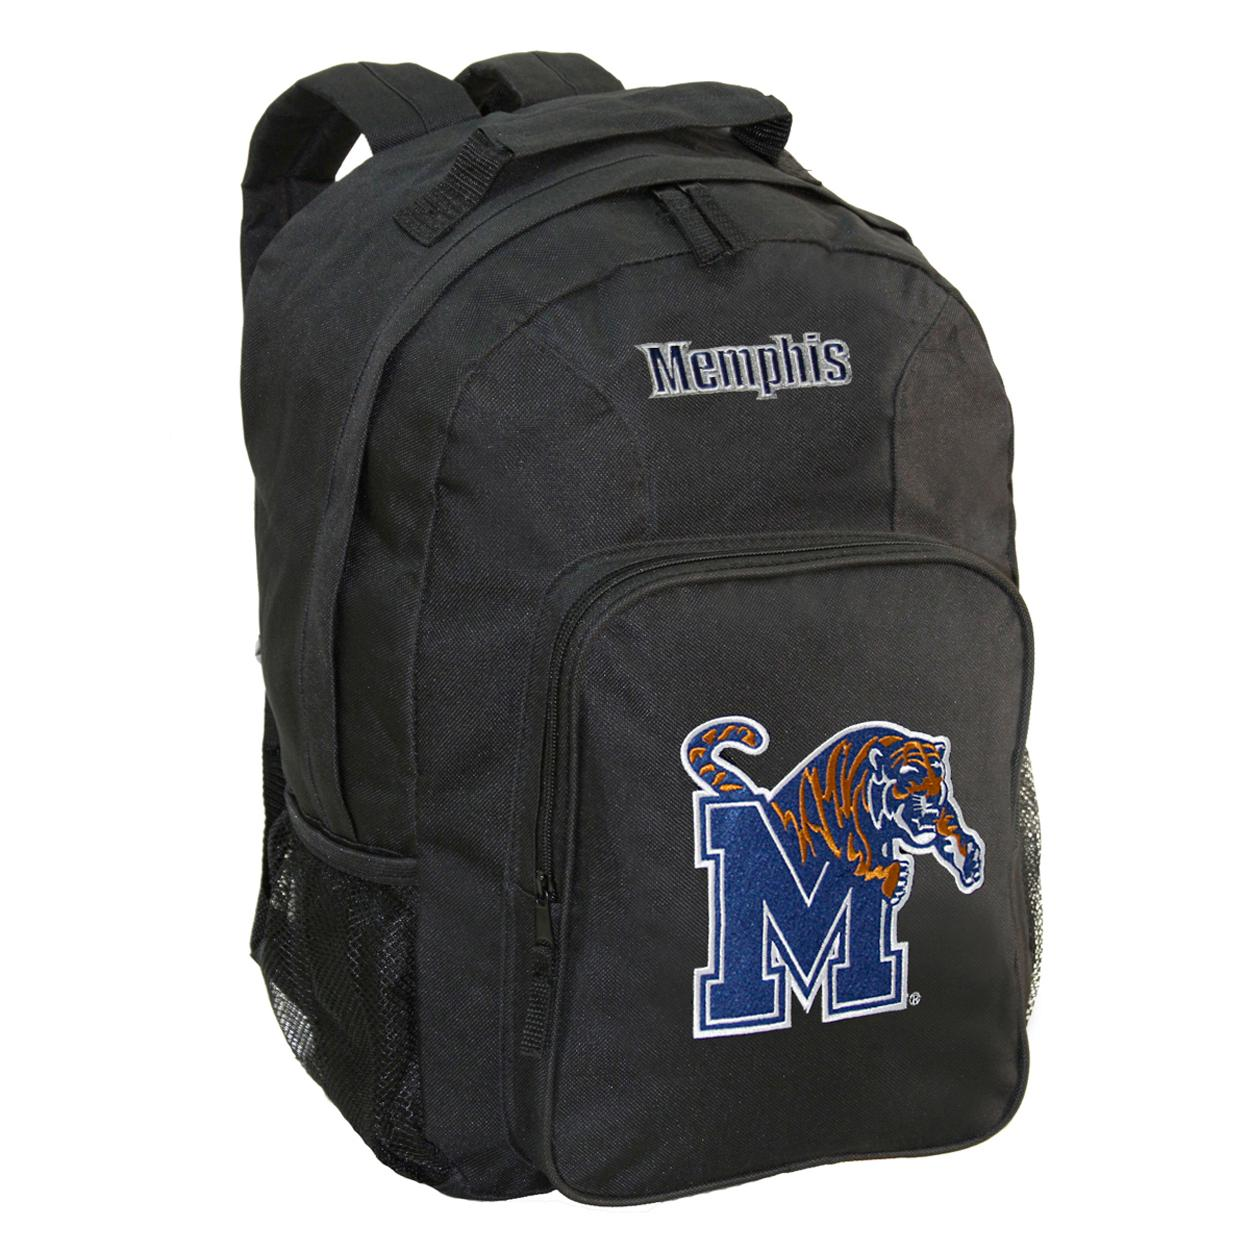 Southpaw Backpack NCAA Black - Memphis Tigers Memphis Tigers C1CMEMSBP